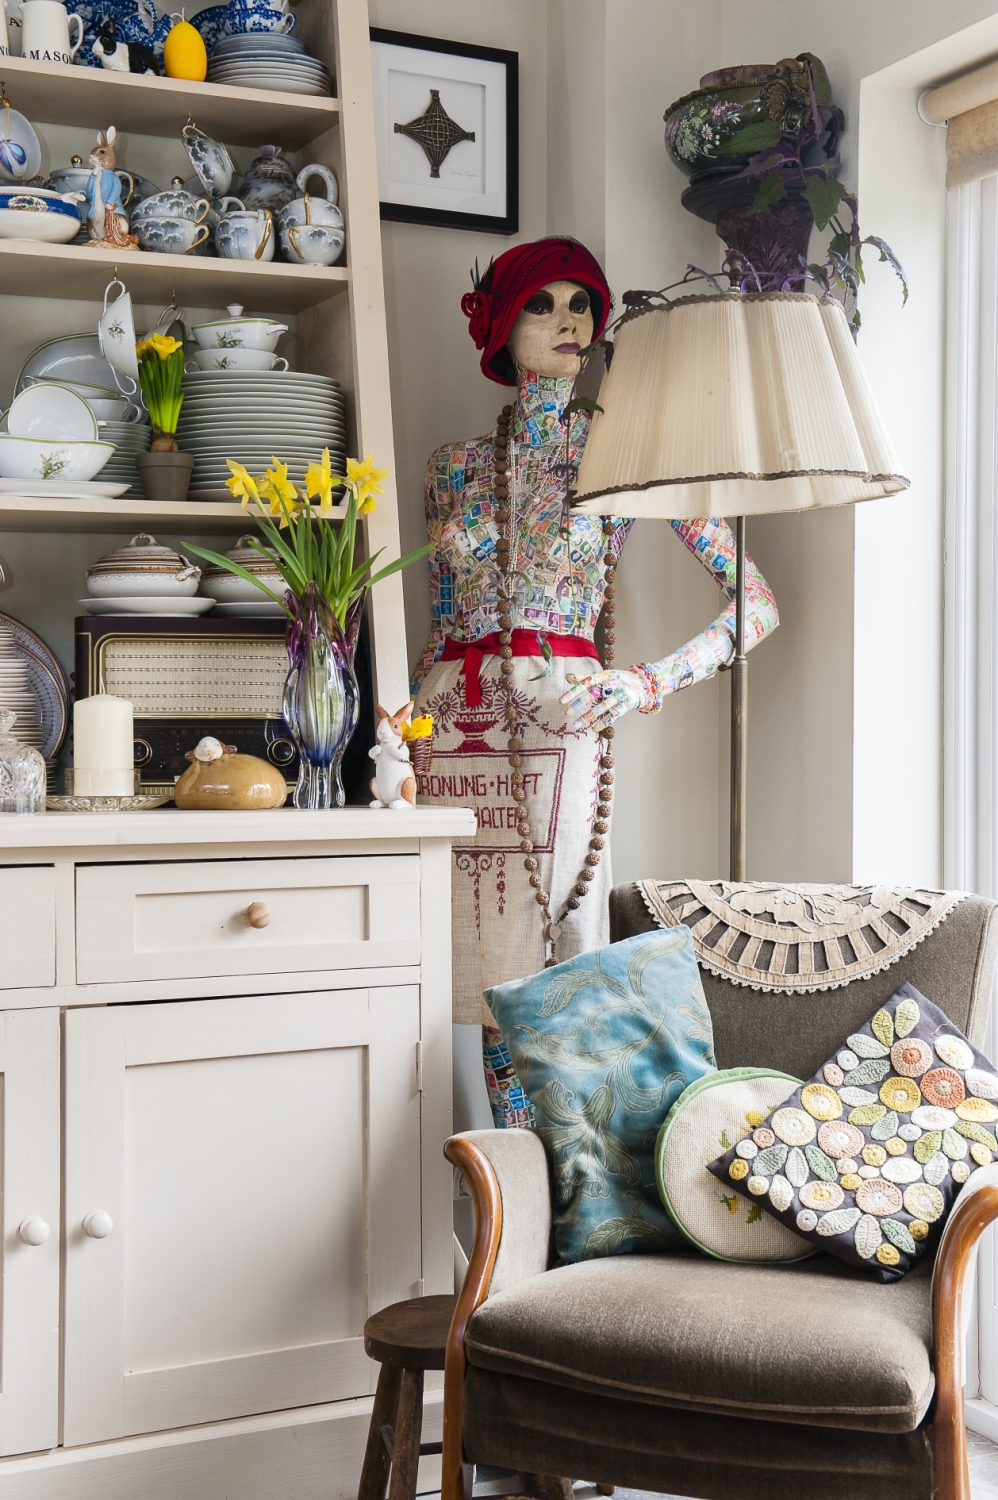 Gladys the mannequin stands in one corner of the kitchen wearing a chic red cloche hat, made by Adrian